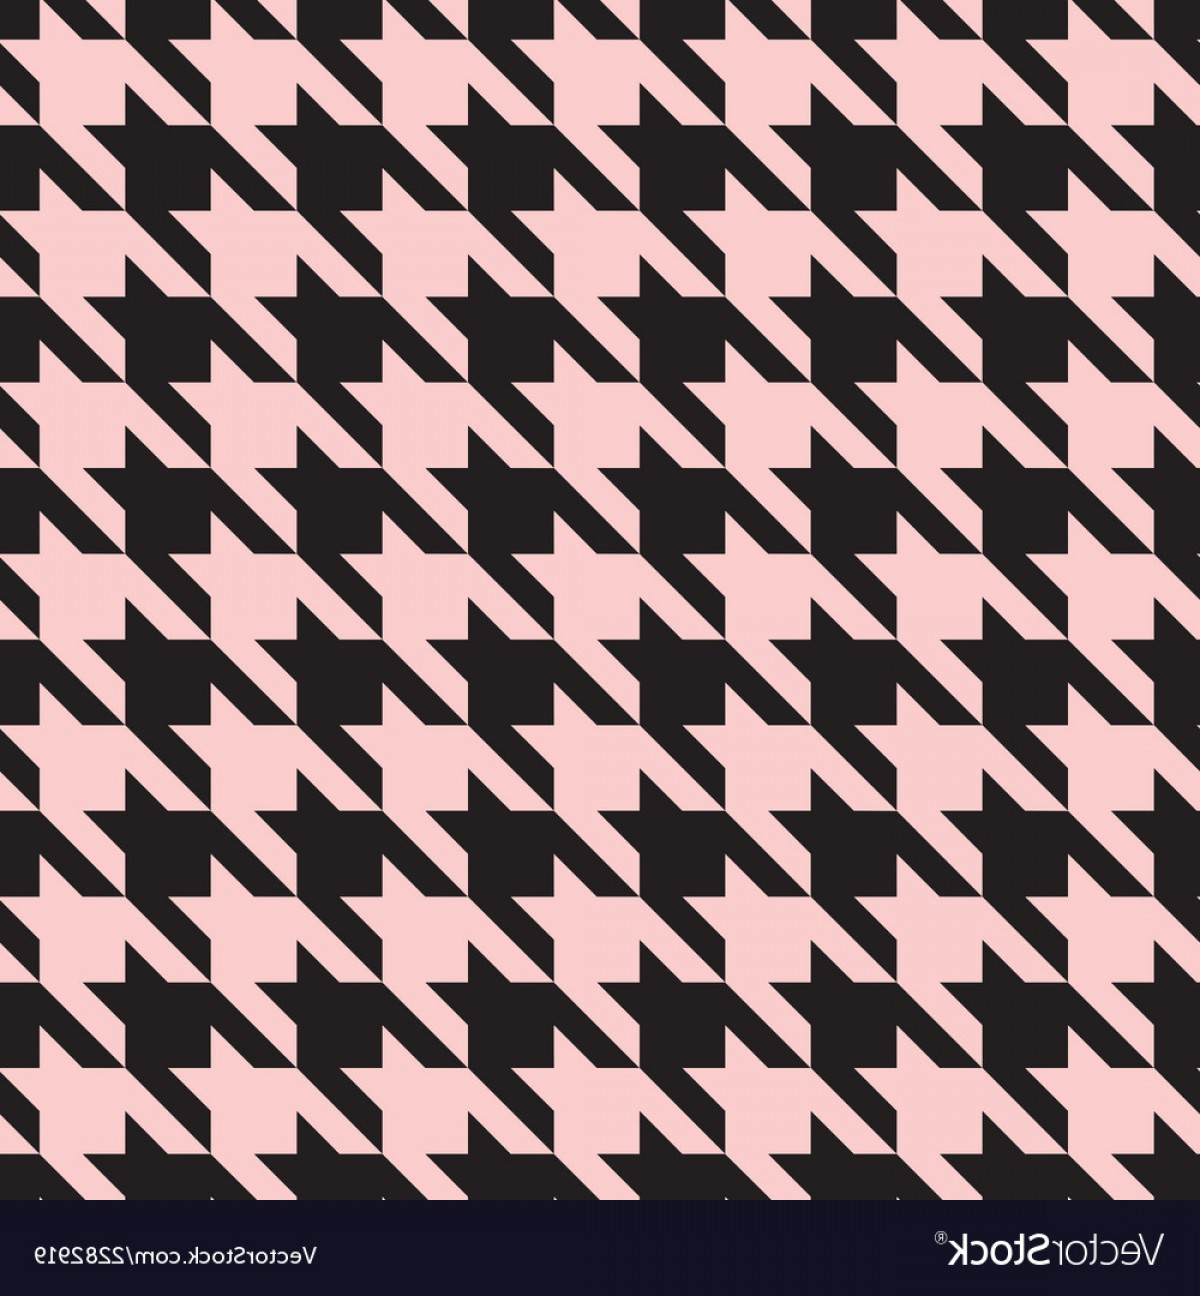 Pink And Black Houndstooth Vector: Houndstooth Tile Pastel Pink And Black Pattern Vector